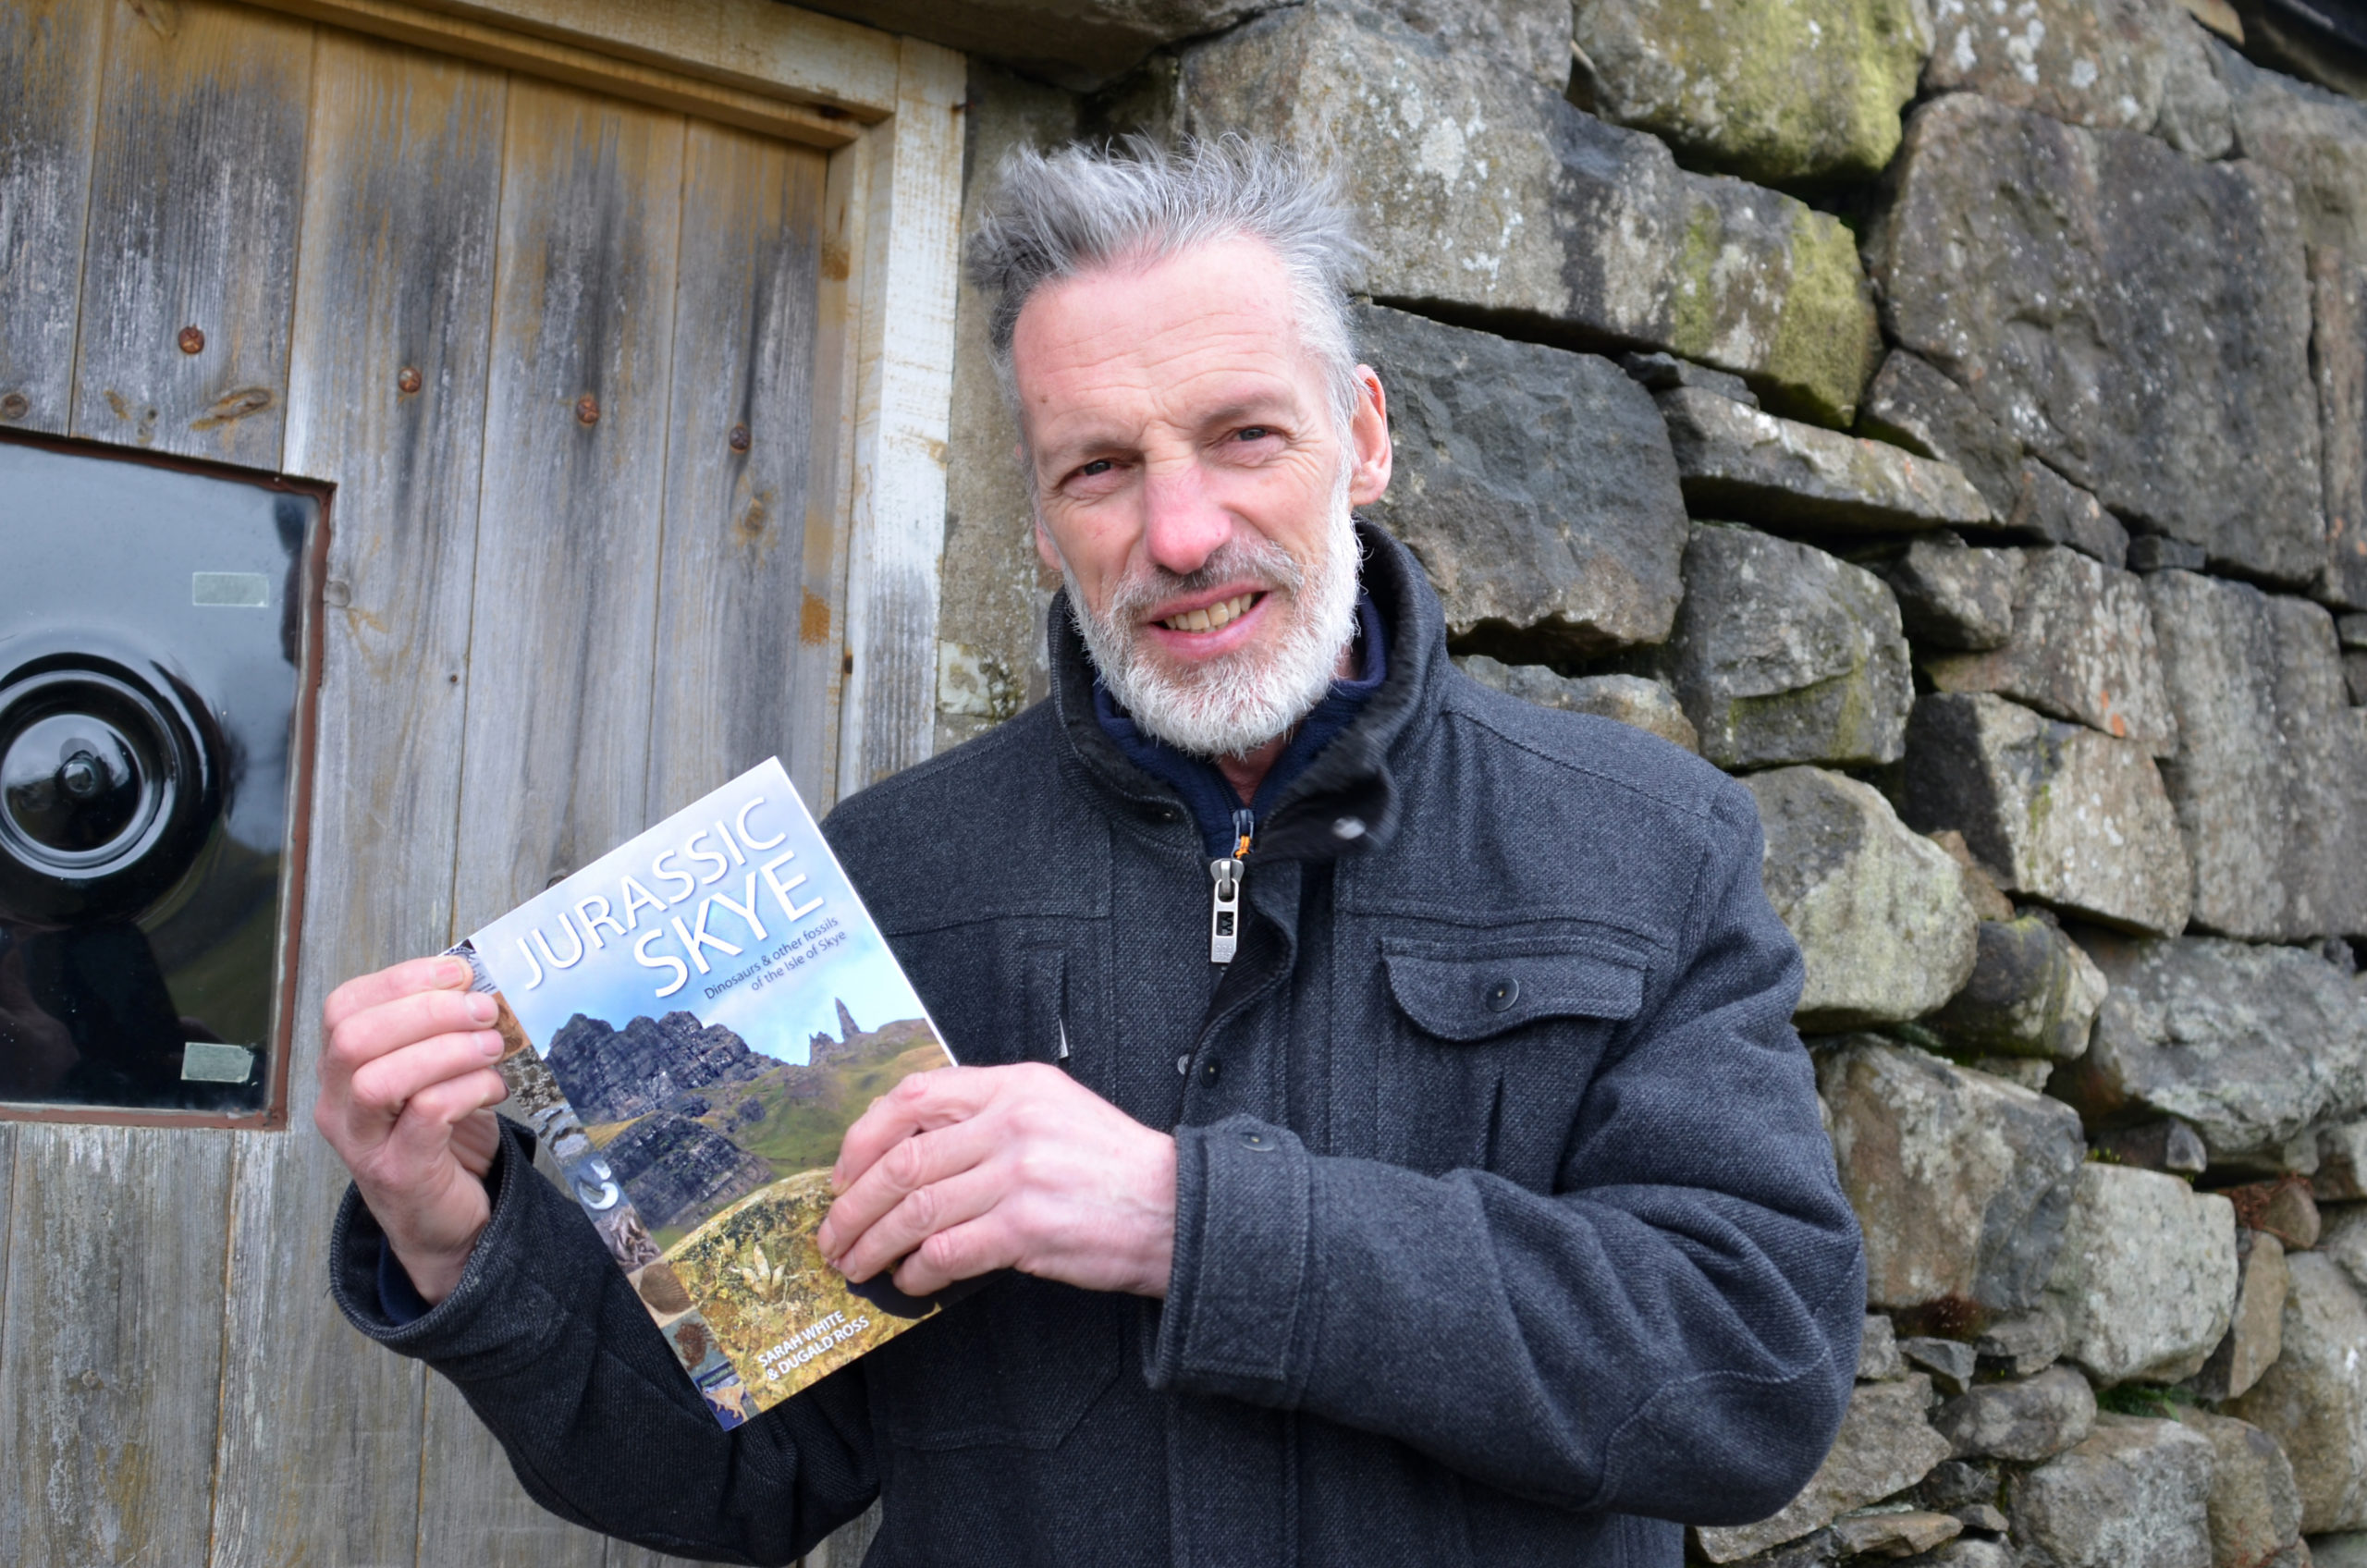 Dugald Ross, curator of Staffin Museum, has helped compile the finds into the first documented guide to the Jurassic finds on Skye